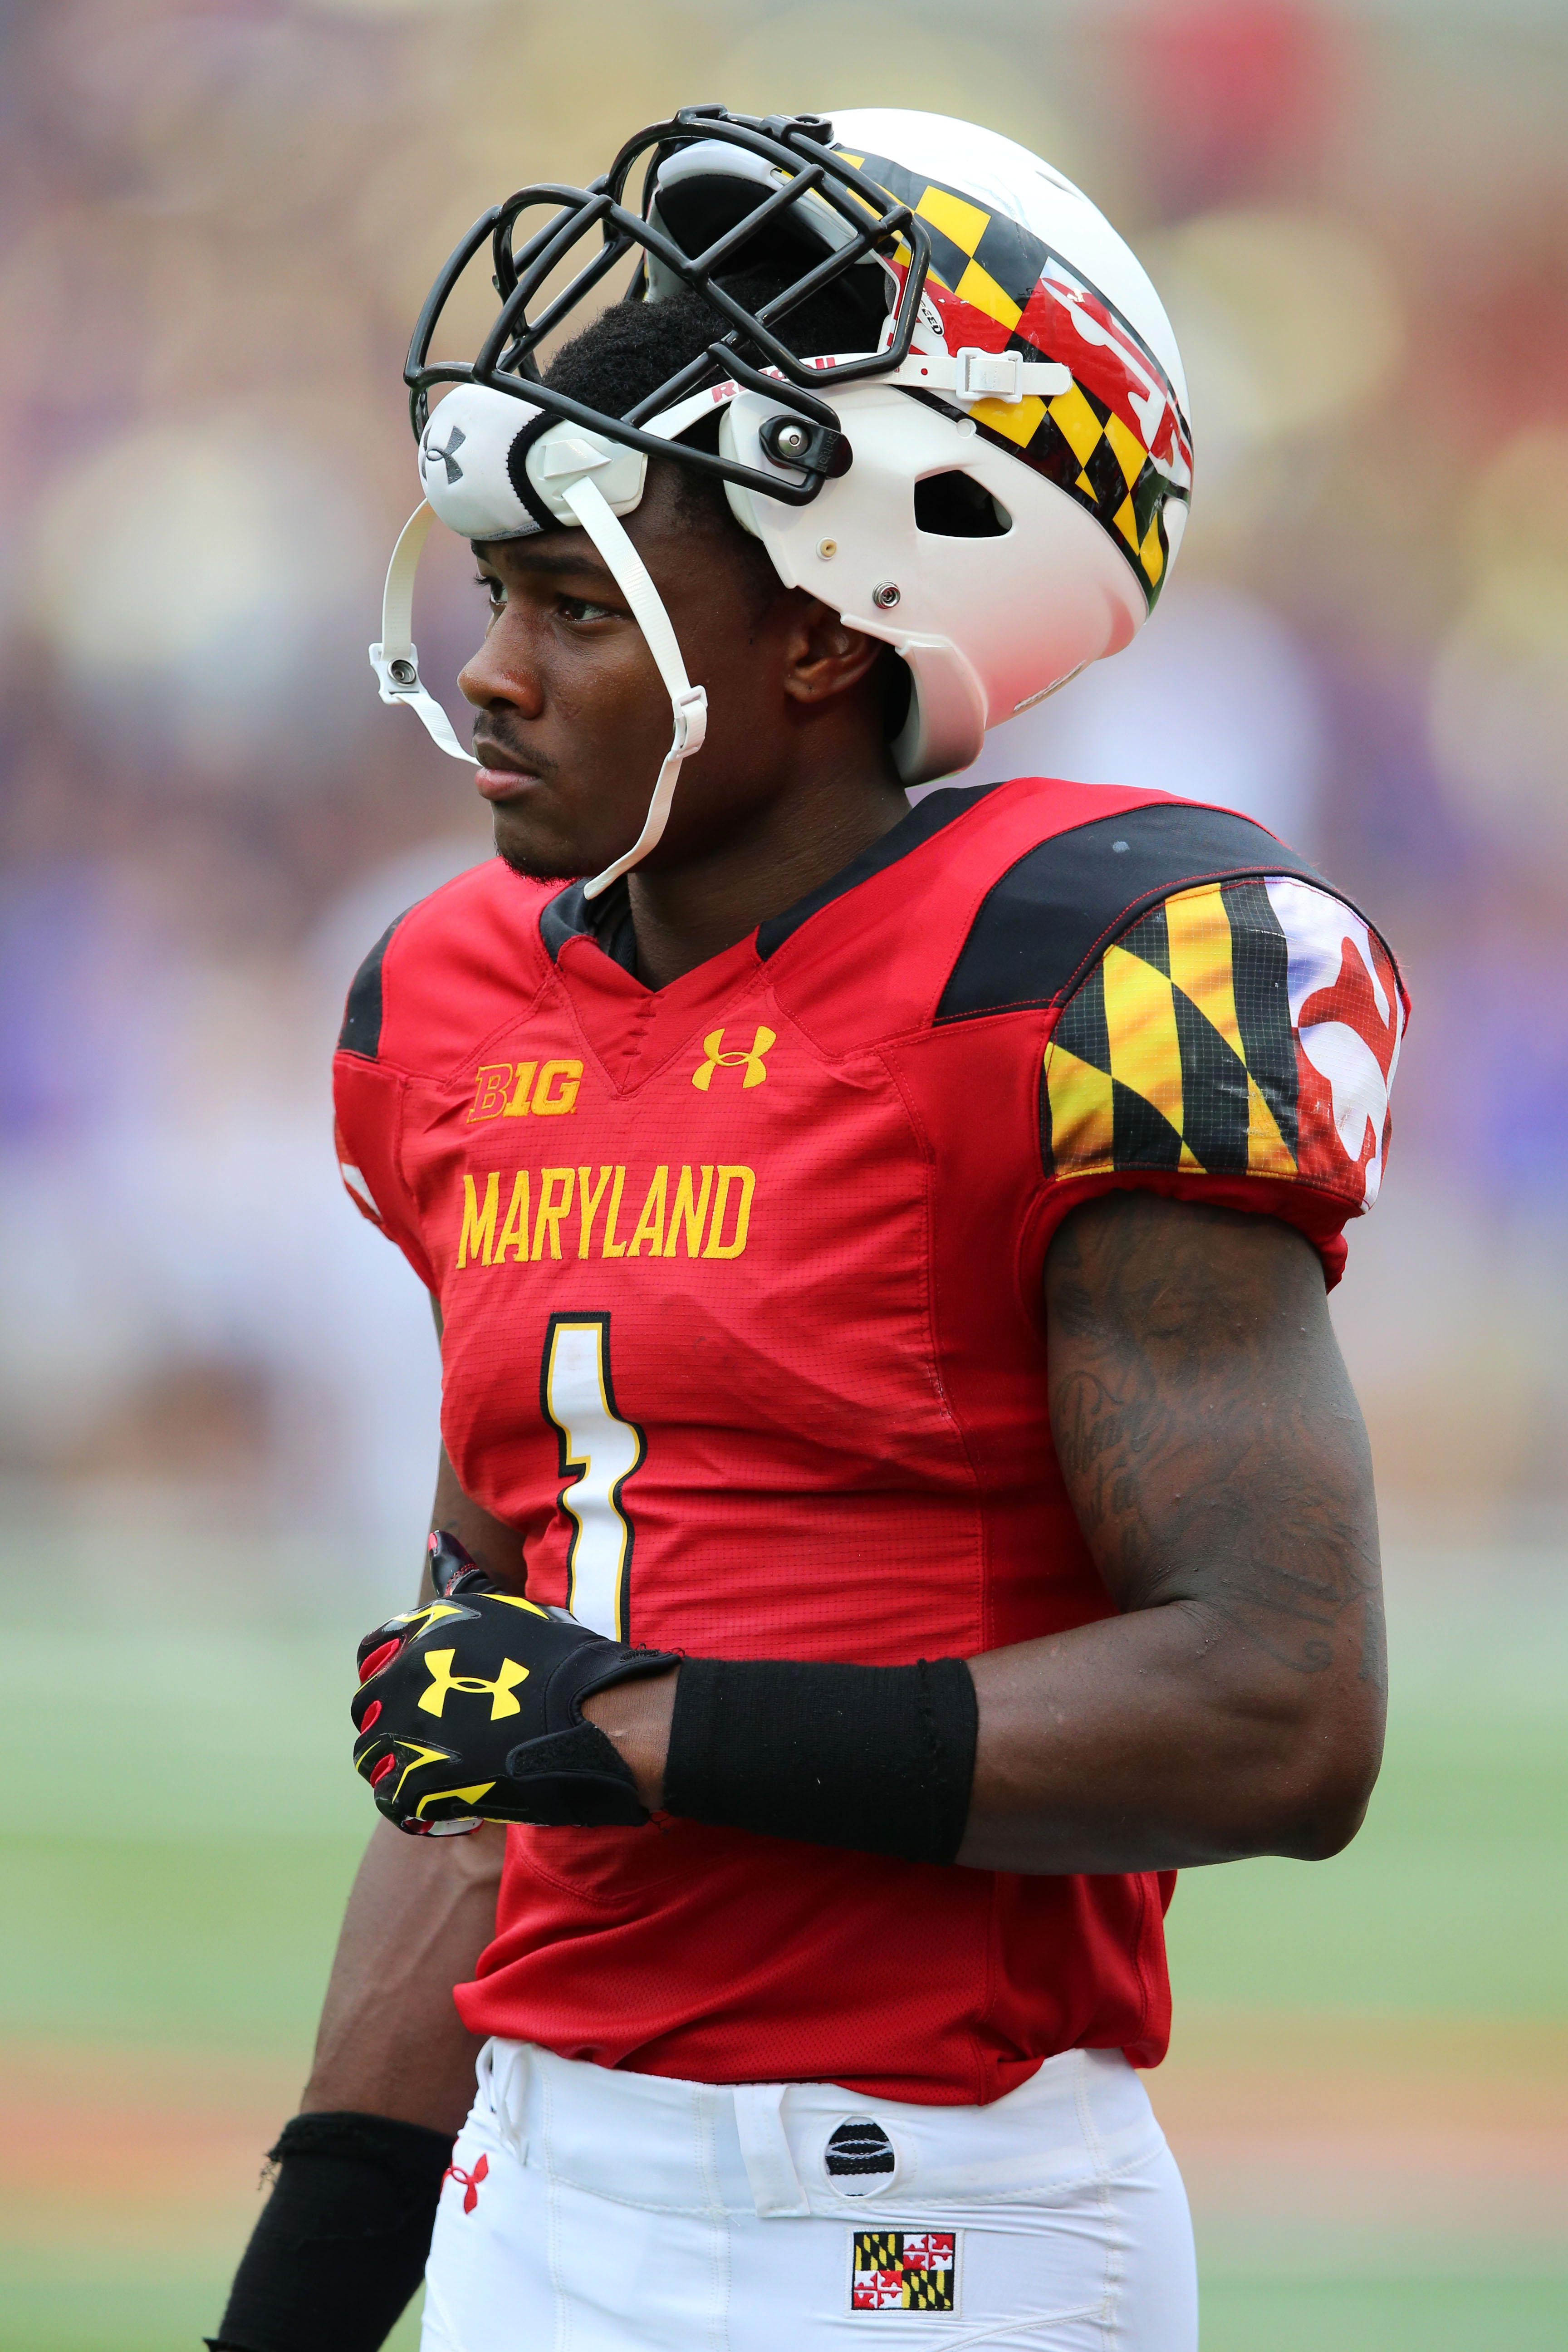 Report Maryland Wr Stefon Diggs Has Lacerated Kidney News Sport